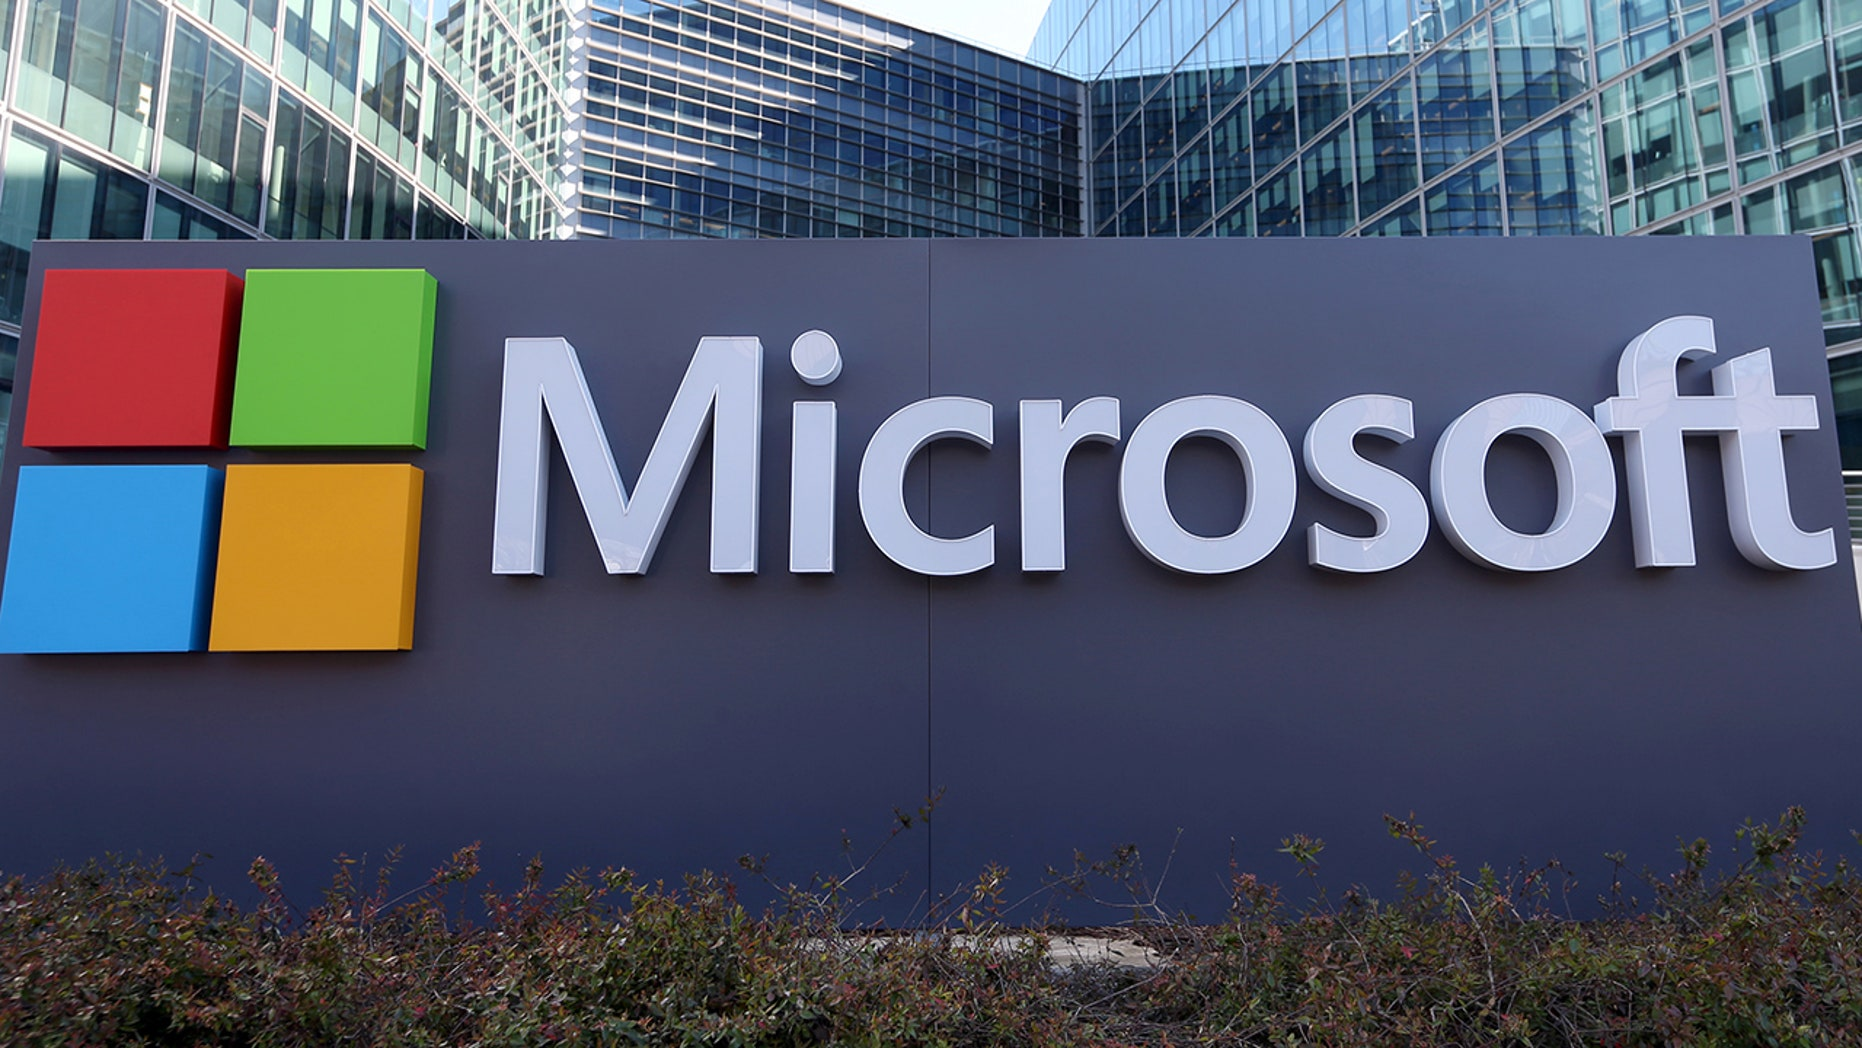 """Amid controversey over the U.S.'s border control policy, Microsoft has come under fire for signing a deal with ICE to let the government agency use its Azure cloud service """"for facial recognition and identification"""" purposes. (Credit: REUTERS/Charles Platiau)"""